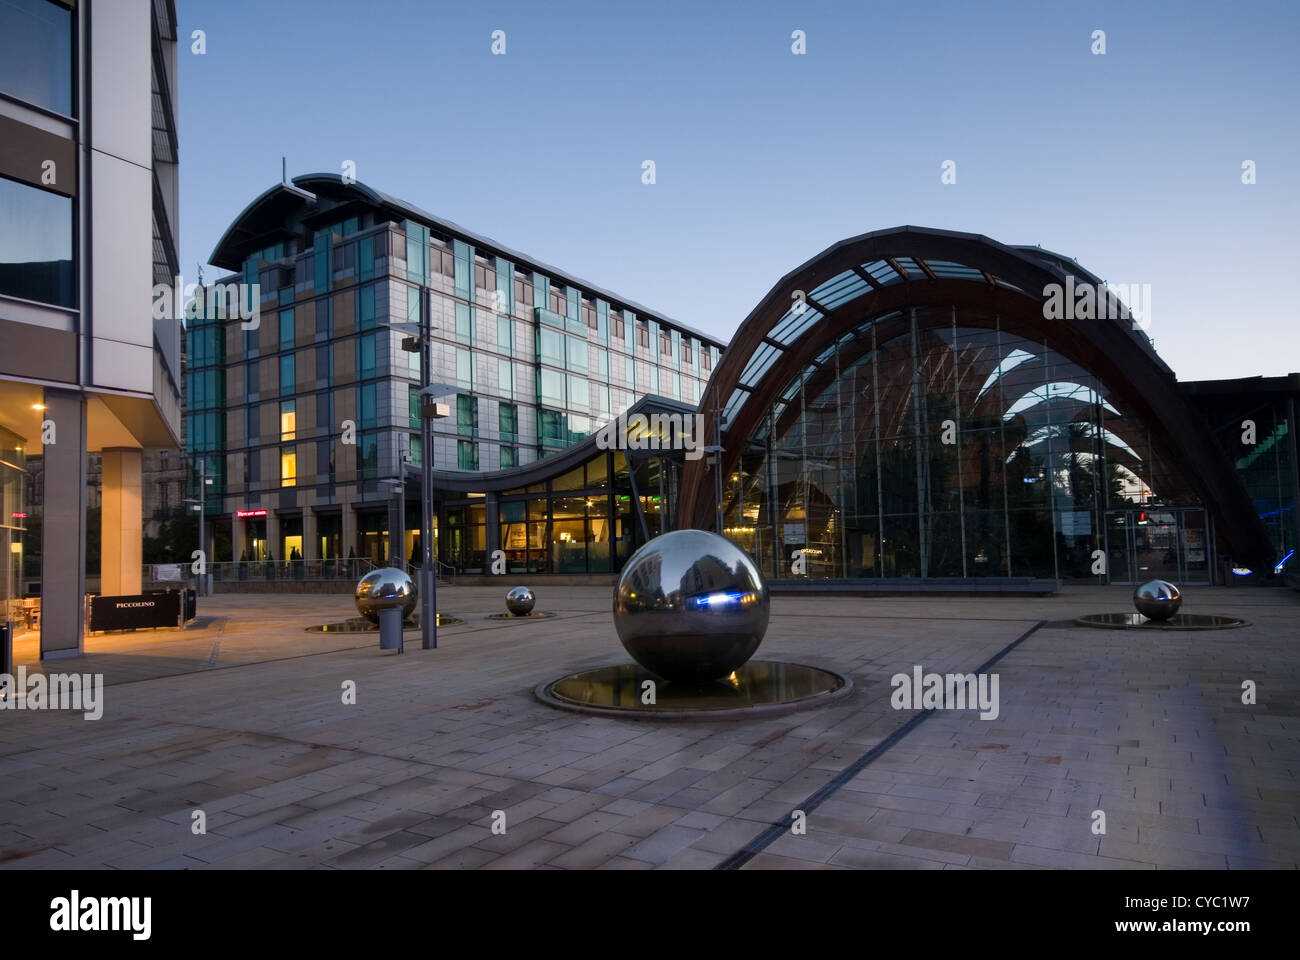 Sheffield City Centre Winter Garden And St Pauls Area Stock Photo Royalty Free Image